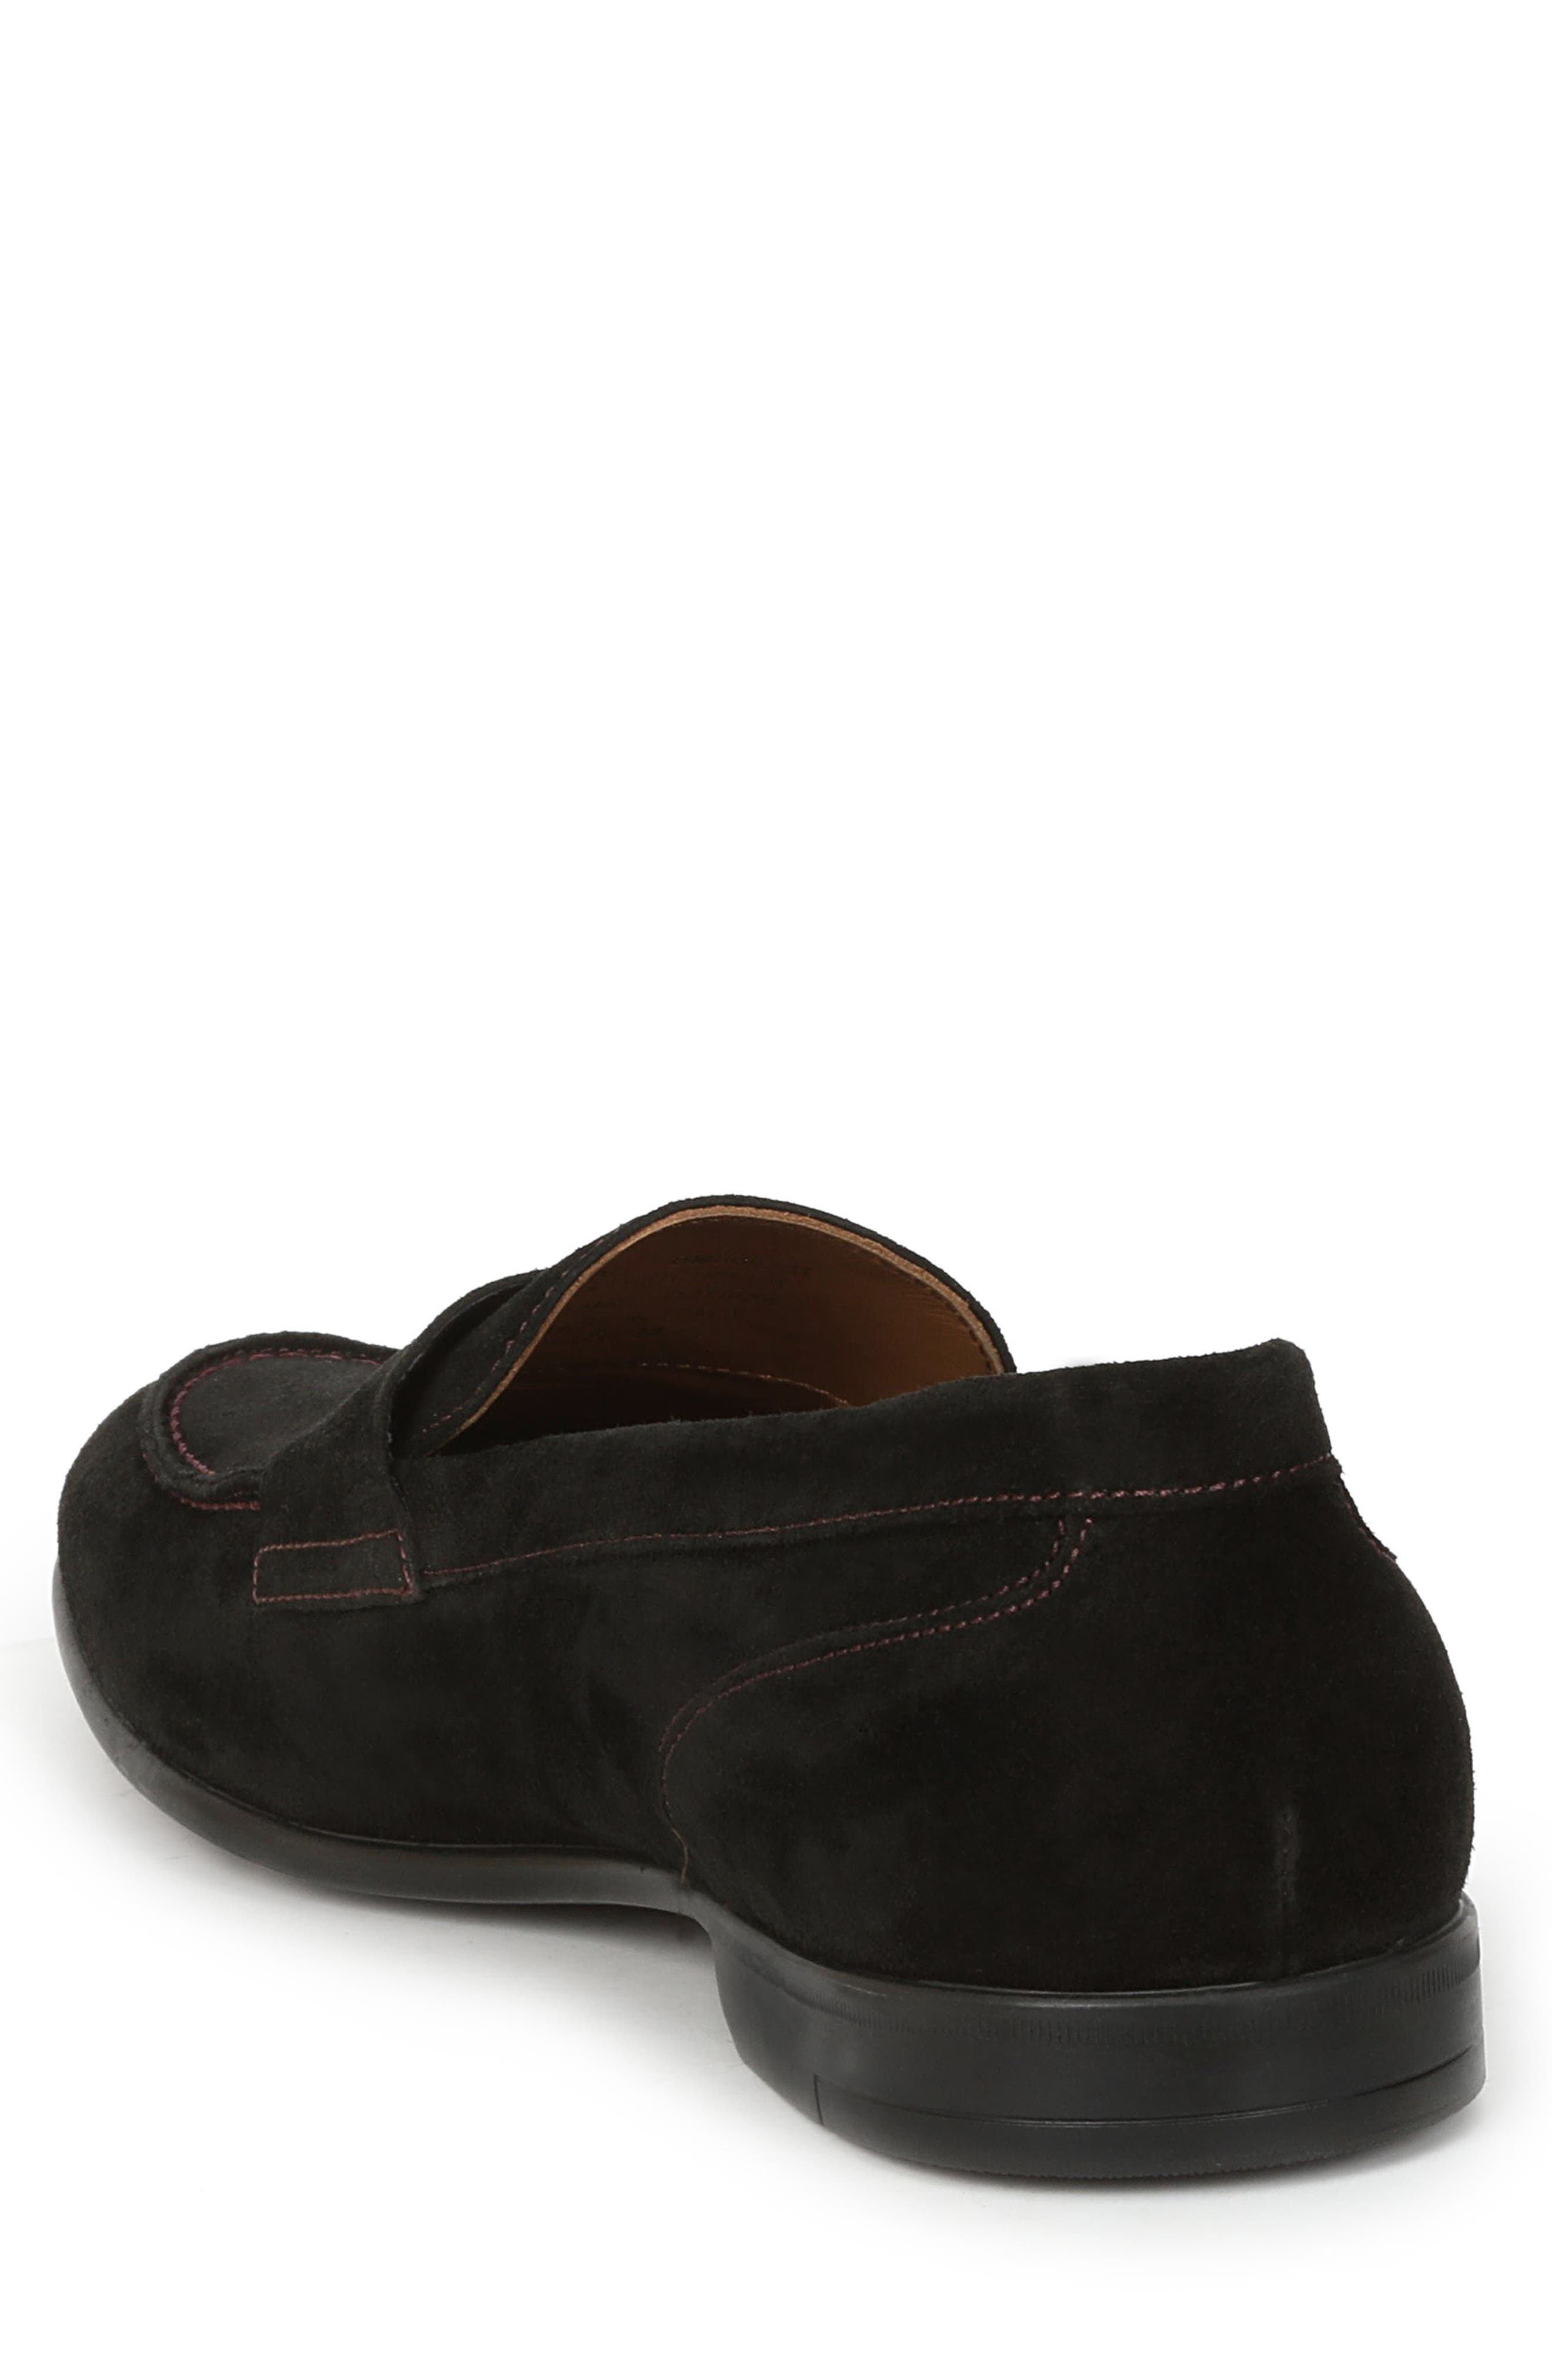 Silas Penny Loafer,                             Alternate thumbnail 2, color,                             BLACK